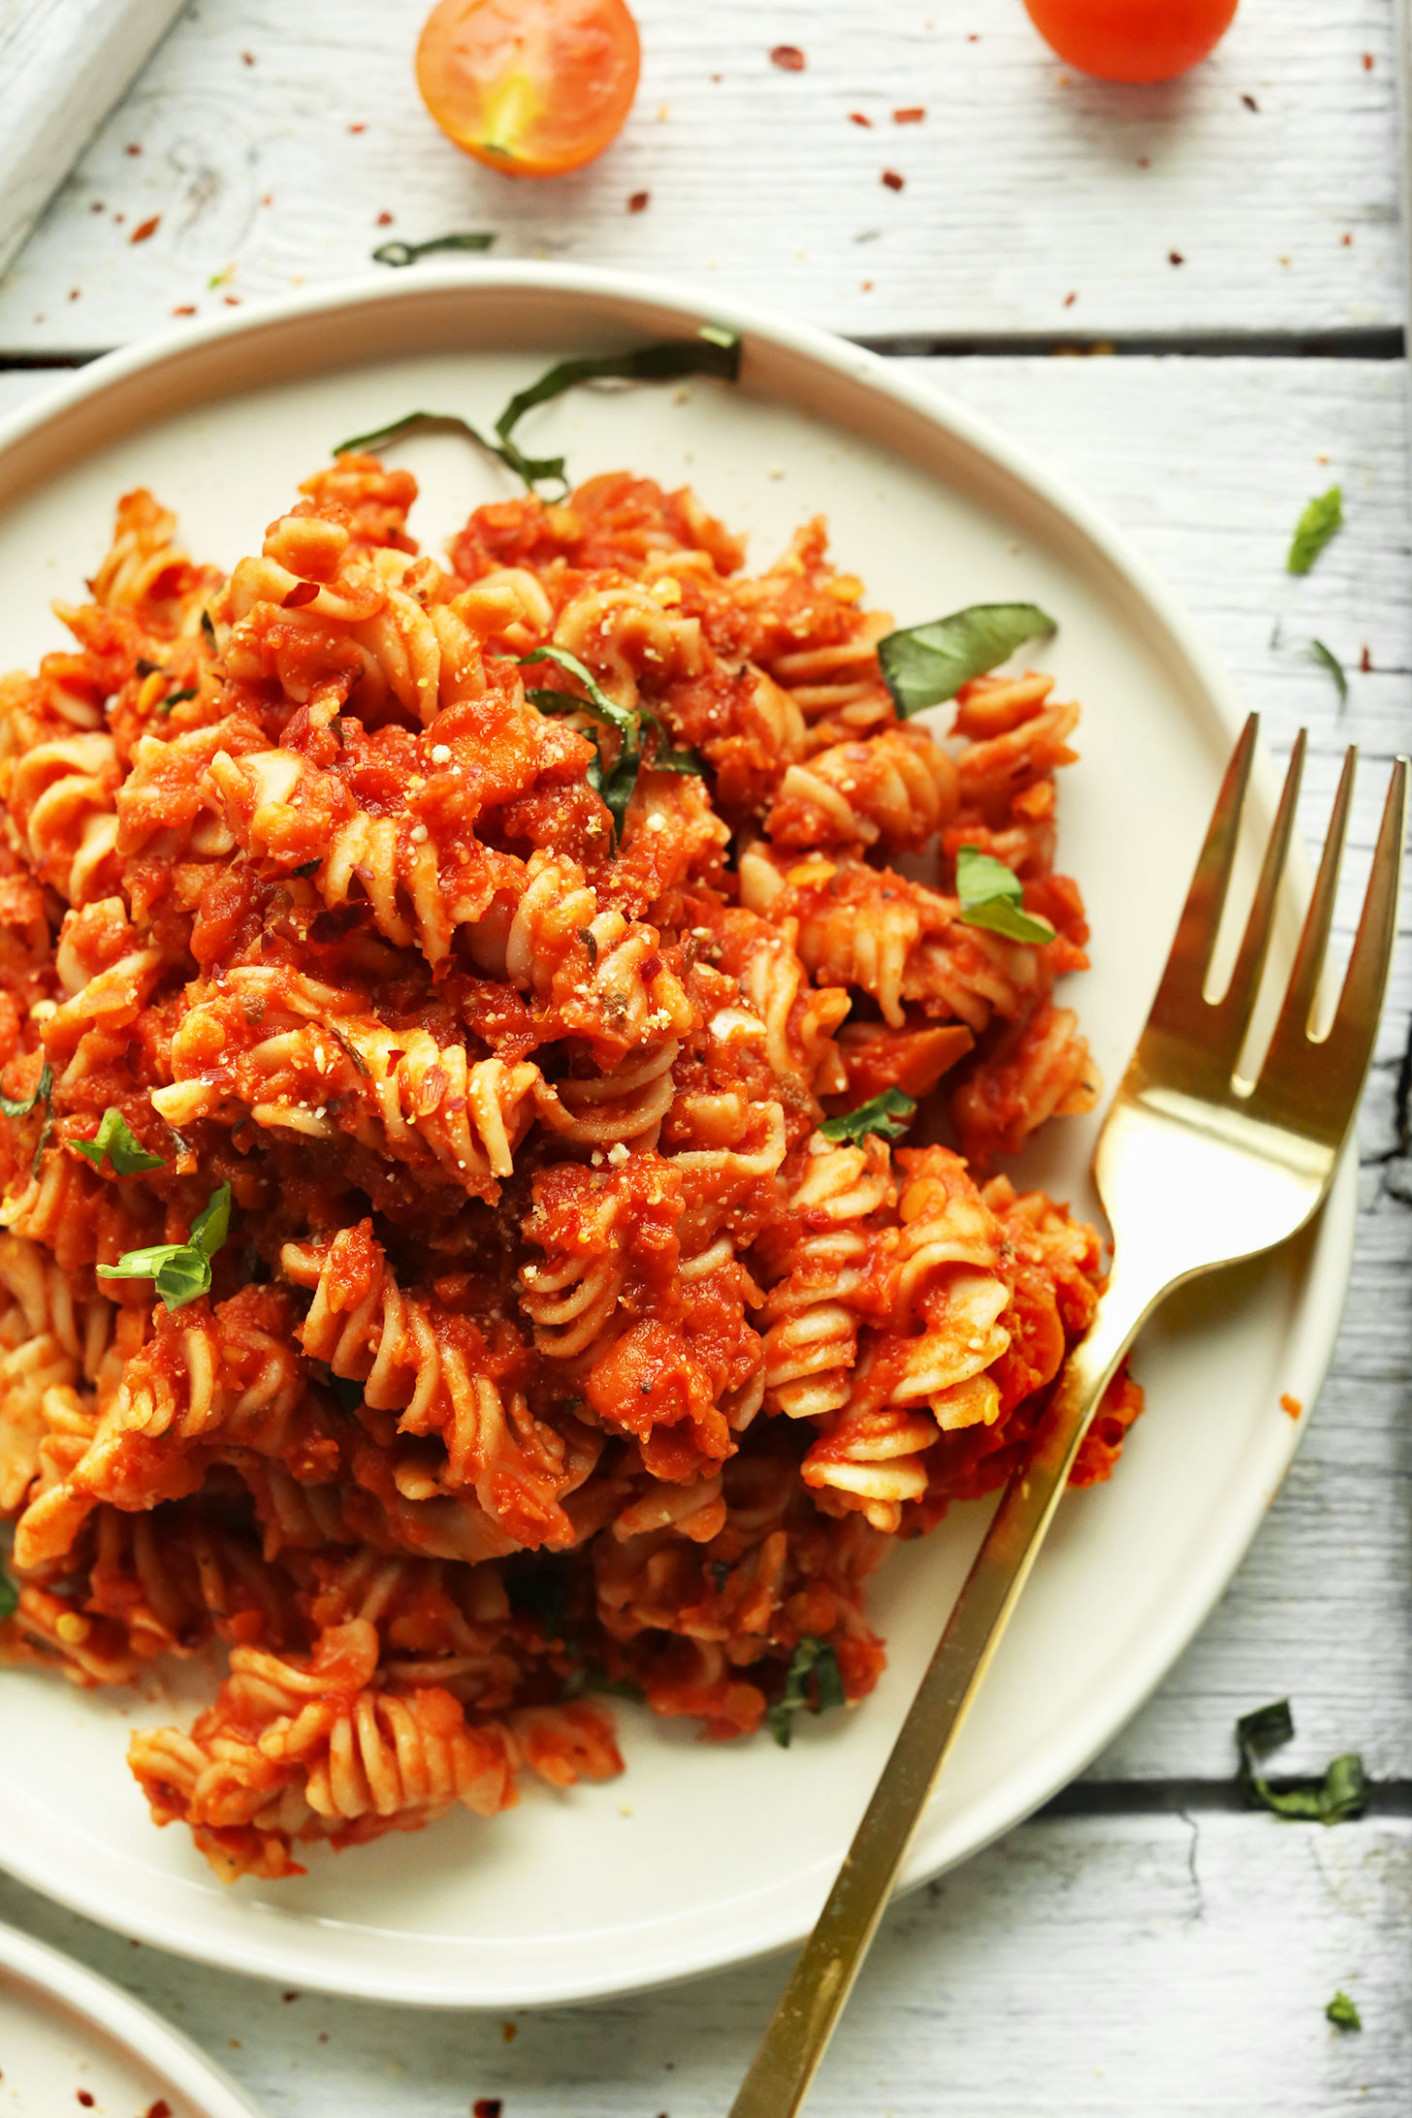 Spicy Red Pasta with Lentils | Minimalist Baker Recipes